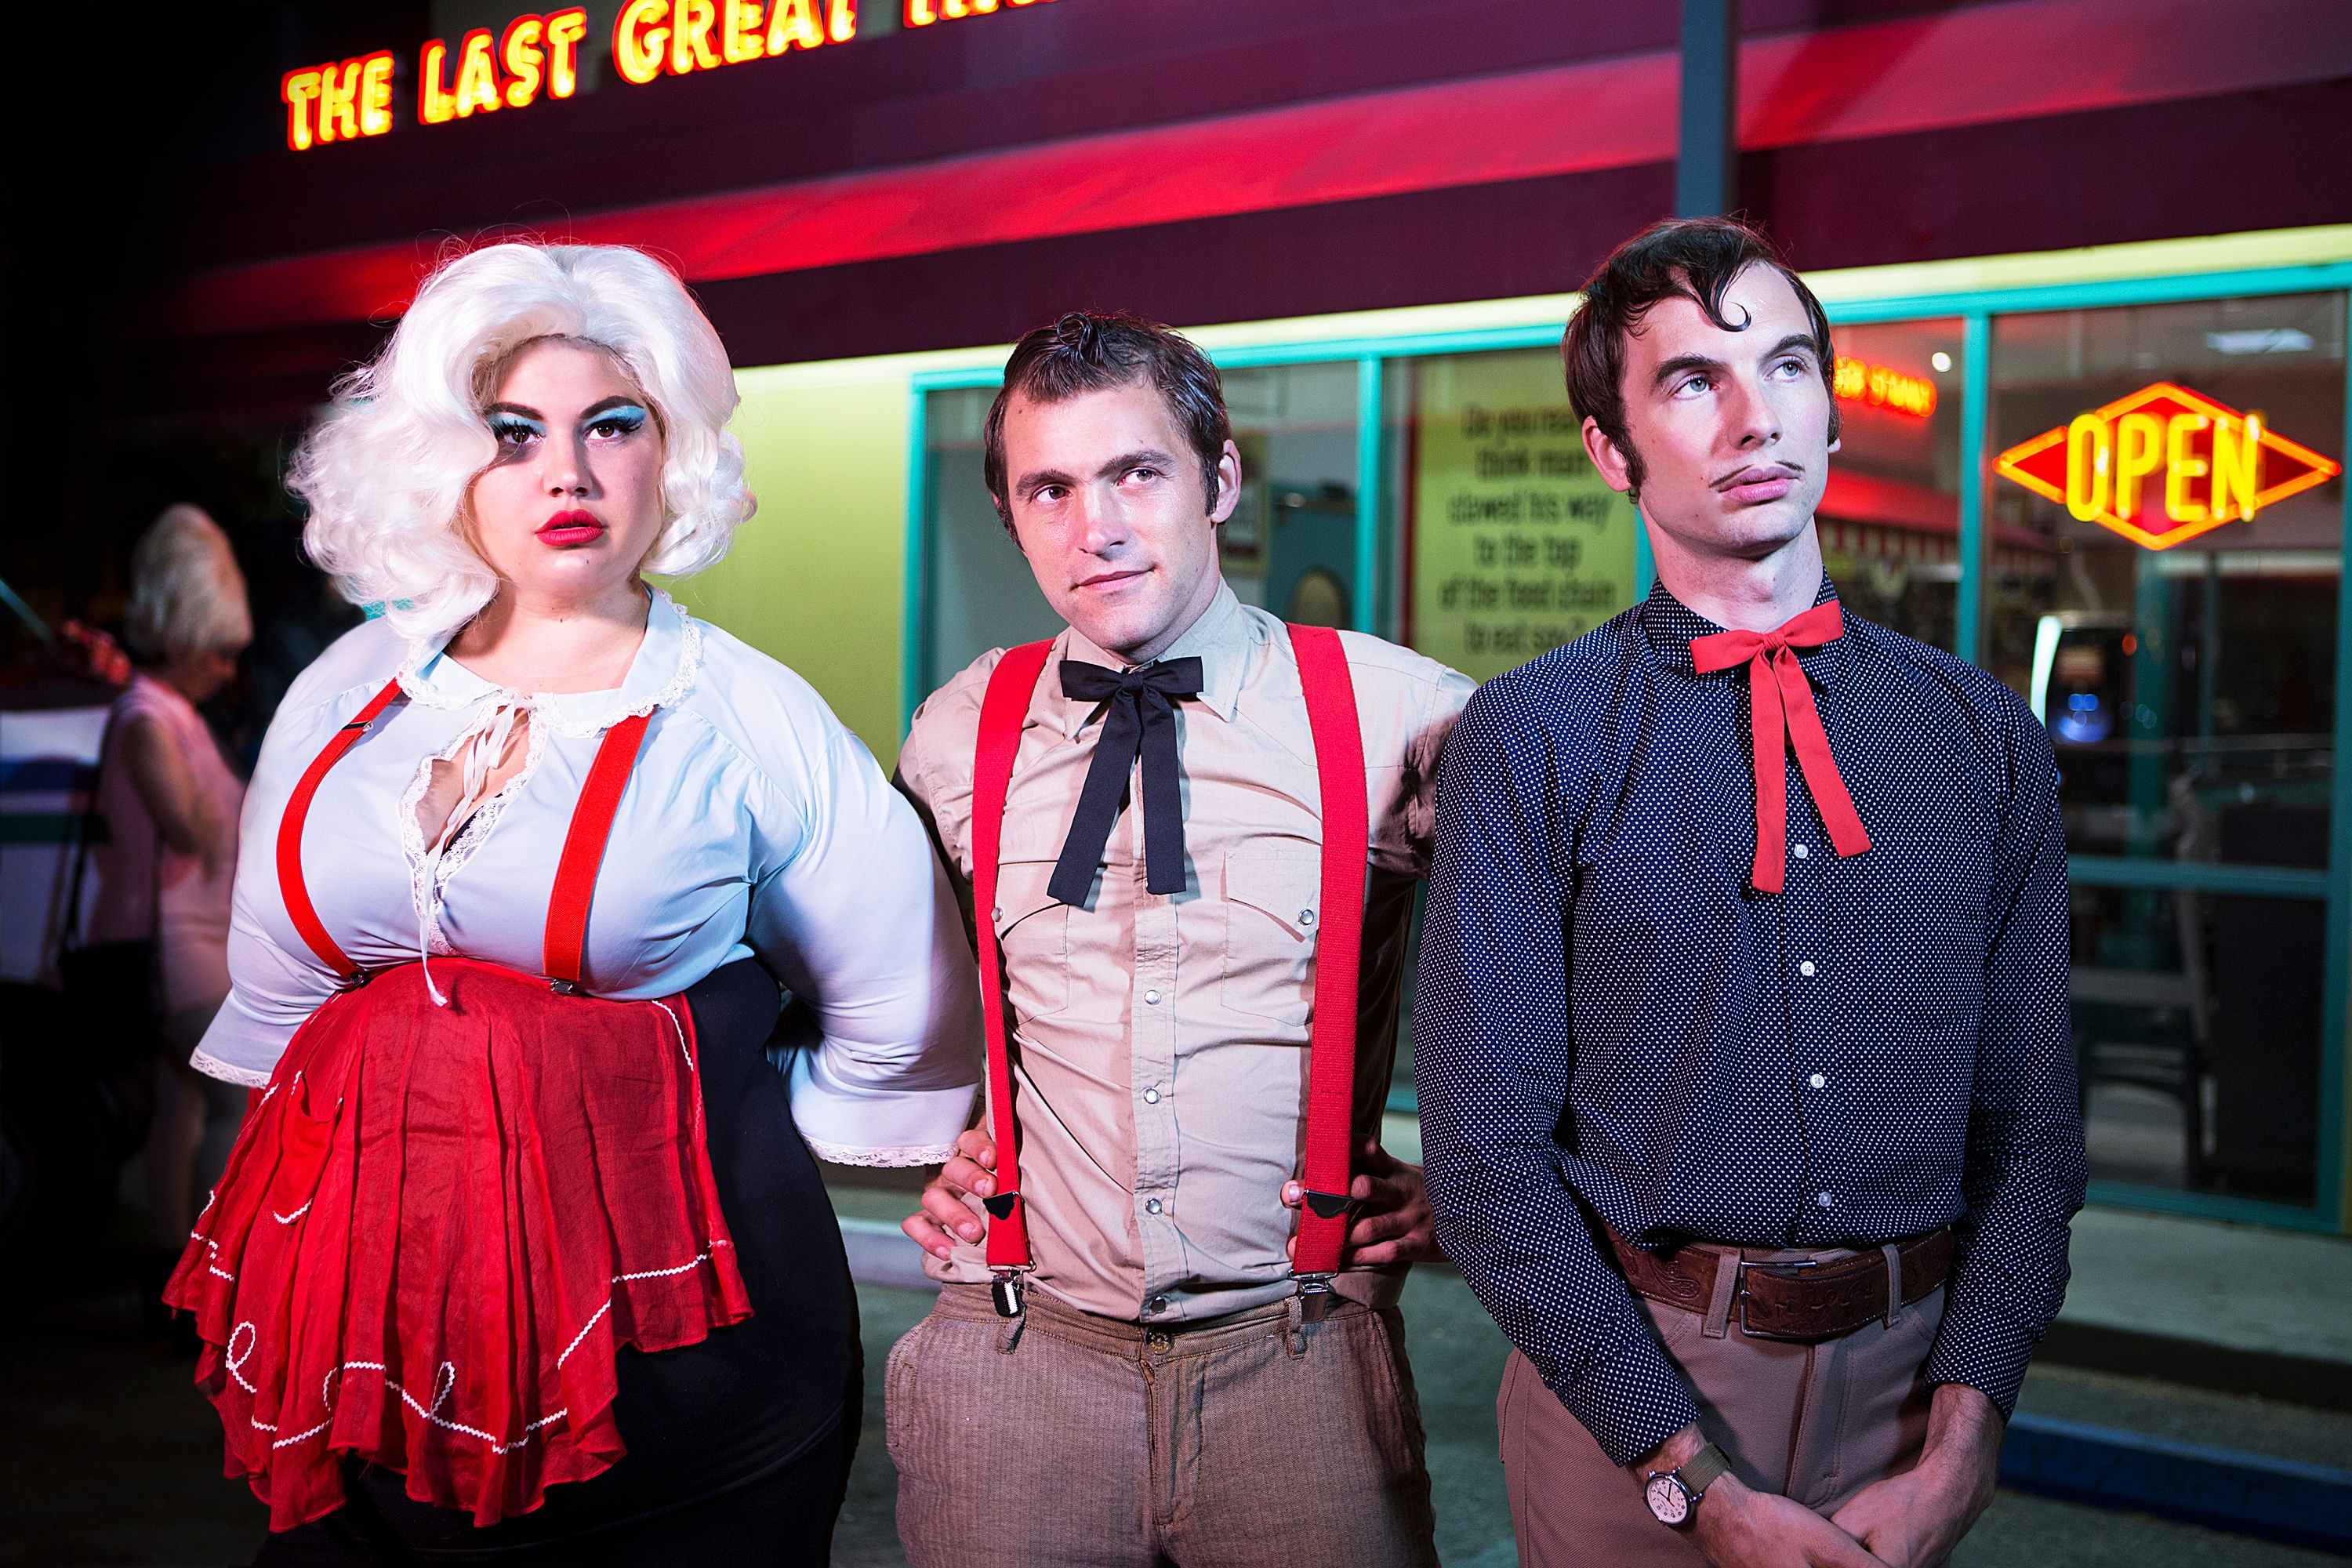 shannon_and_the_clams_underground_rocknroll_garage_50s_punk_ghost_stories_haunted_spooky_tour